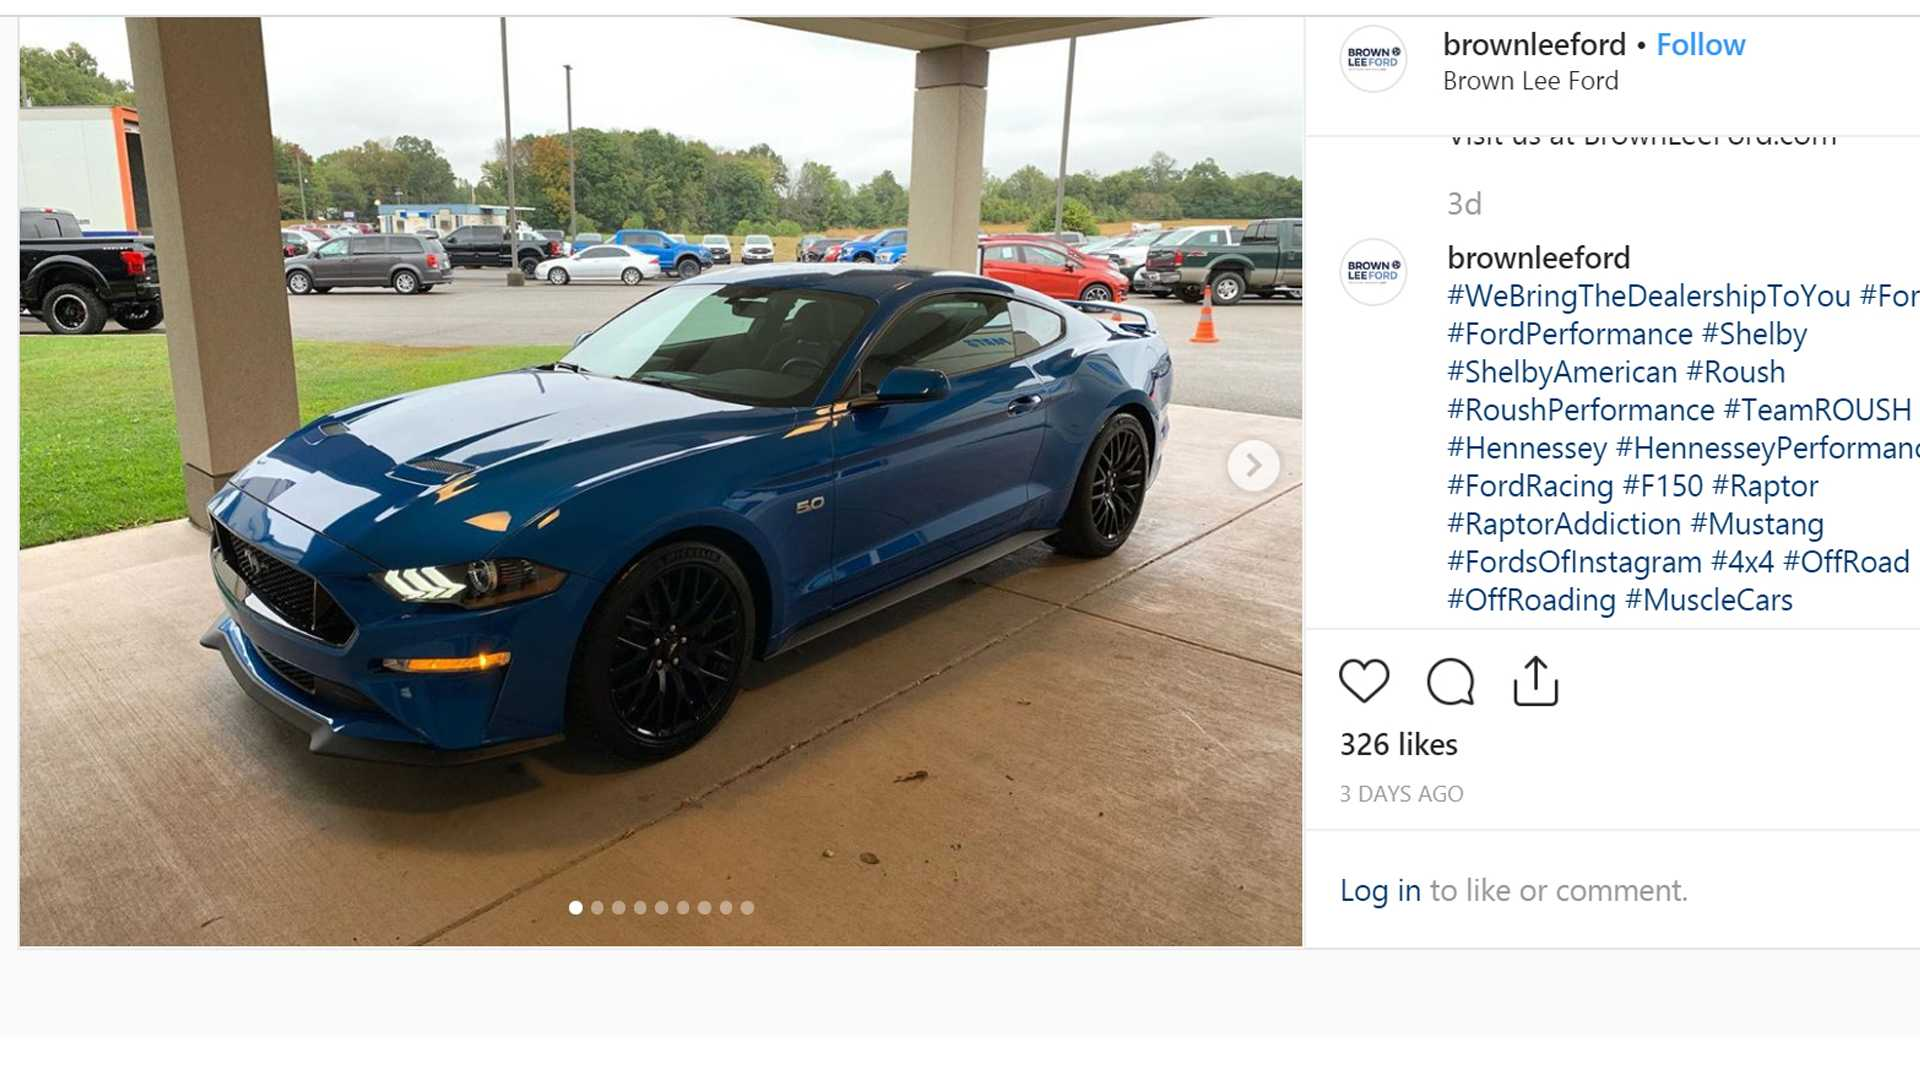 Ford Dealer Selling New Mustang GT With 700 HP And Warranty For $40K